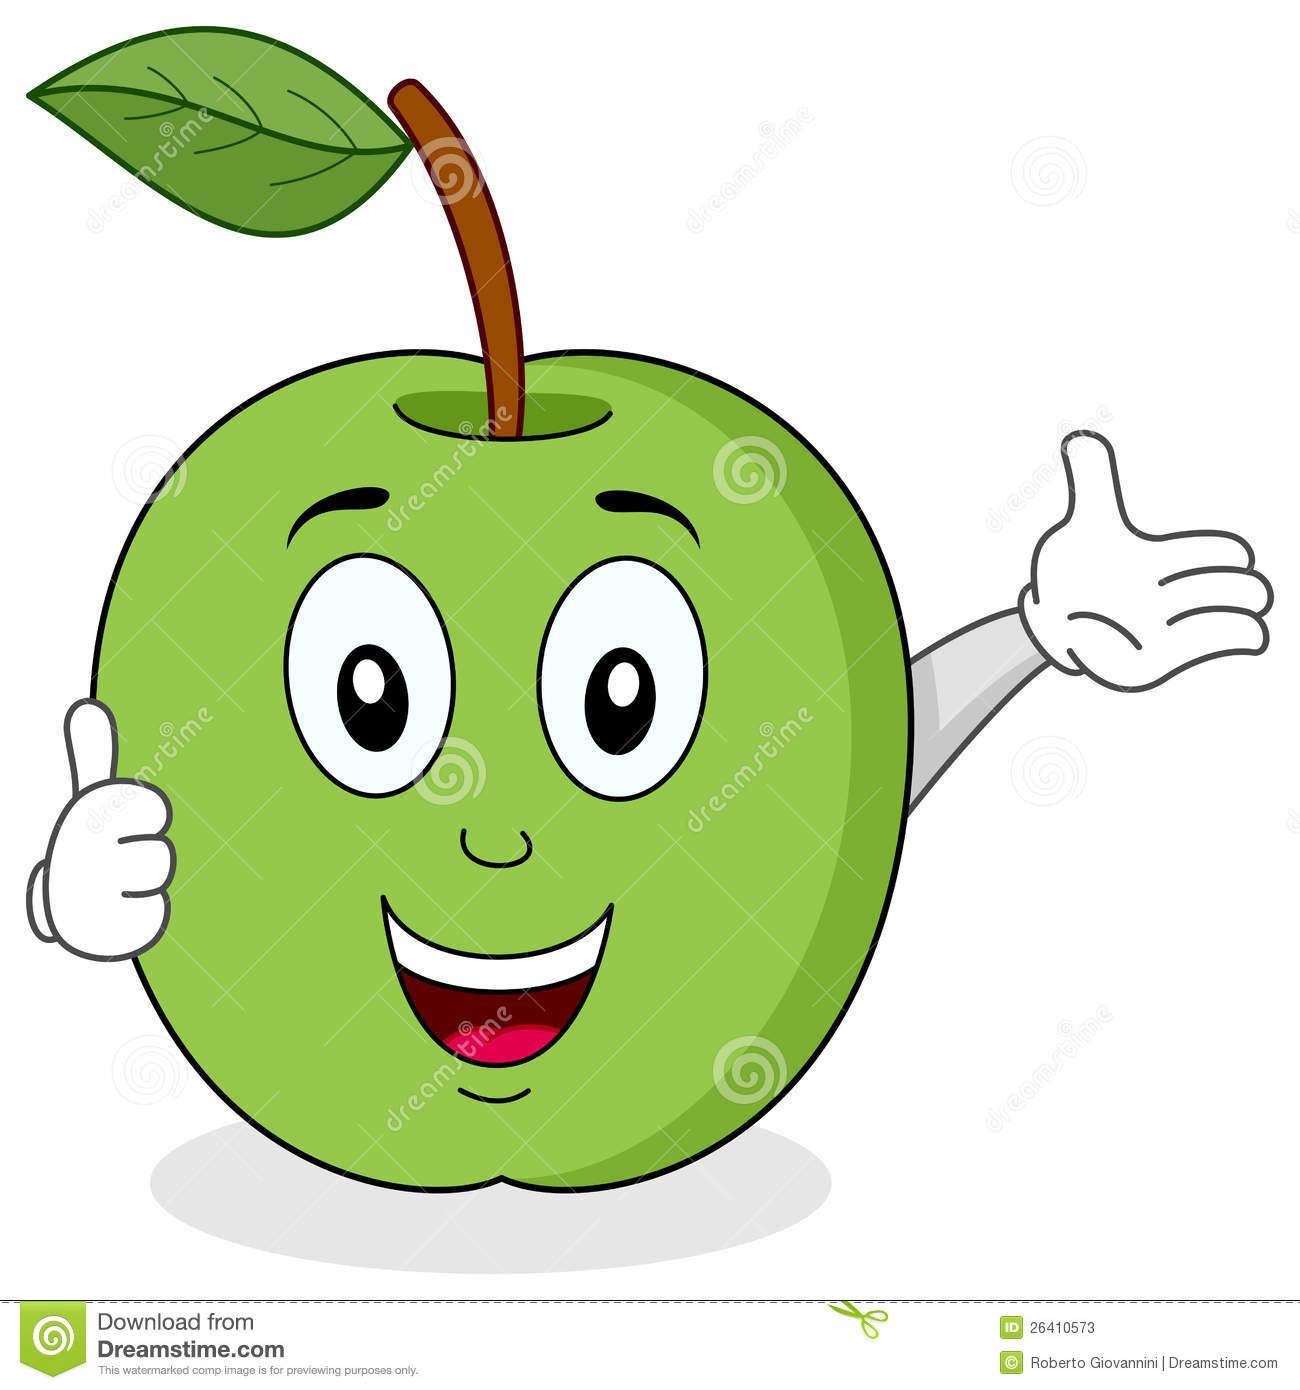 Green Apple Thumbs Up Character Stock Photos.